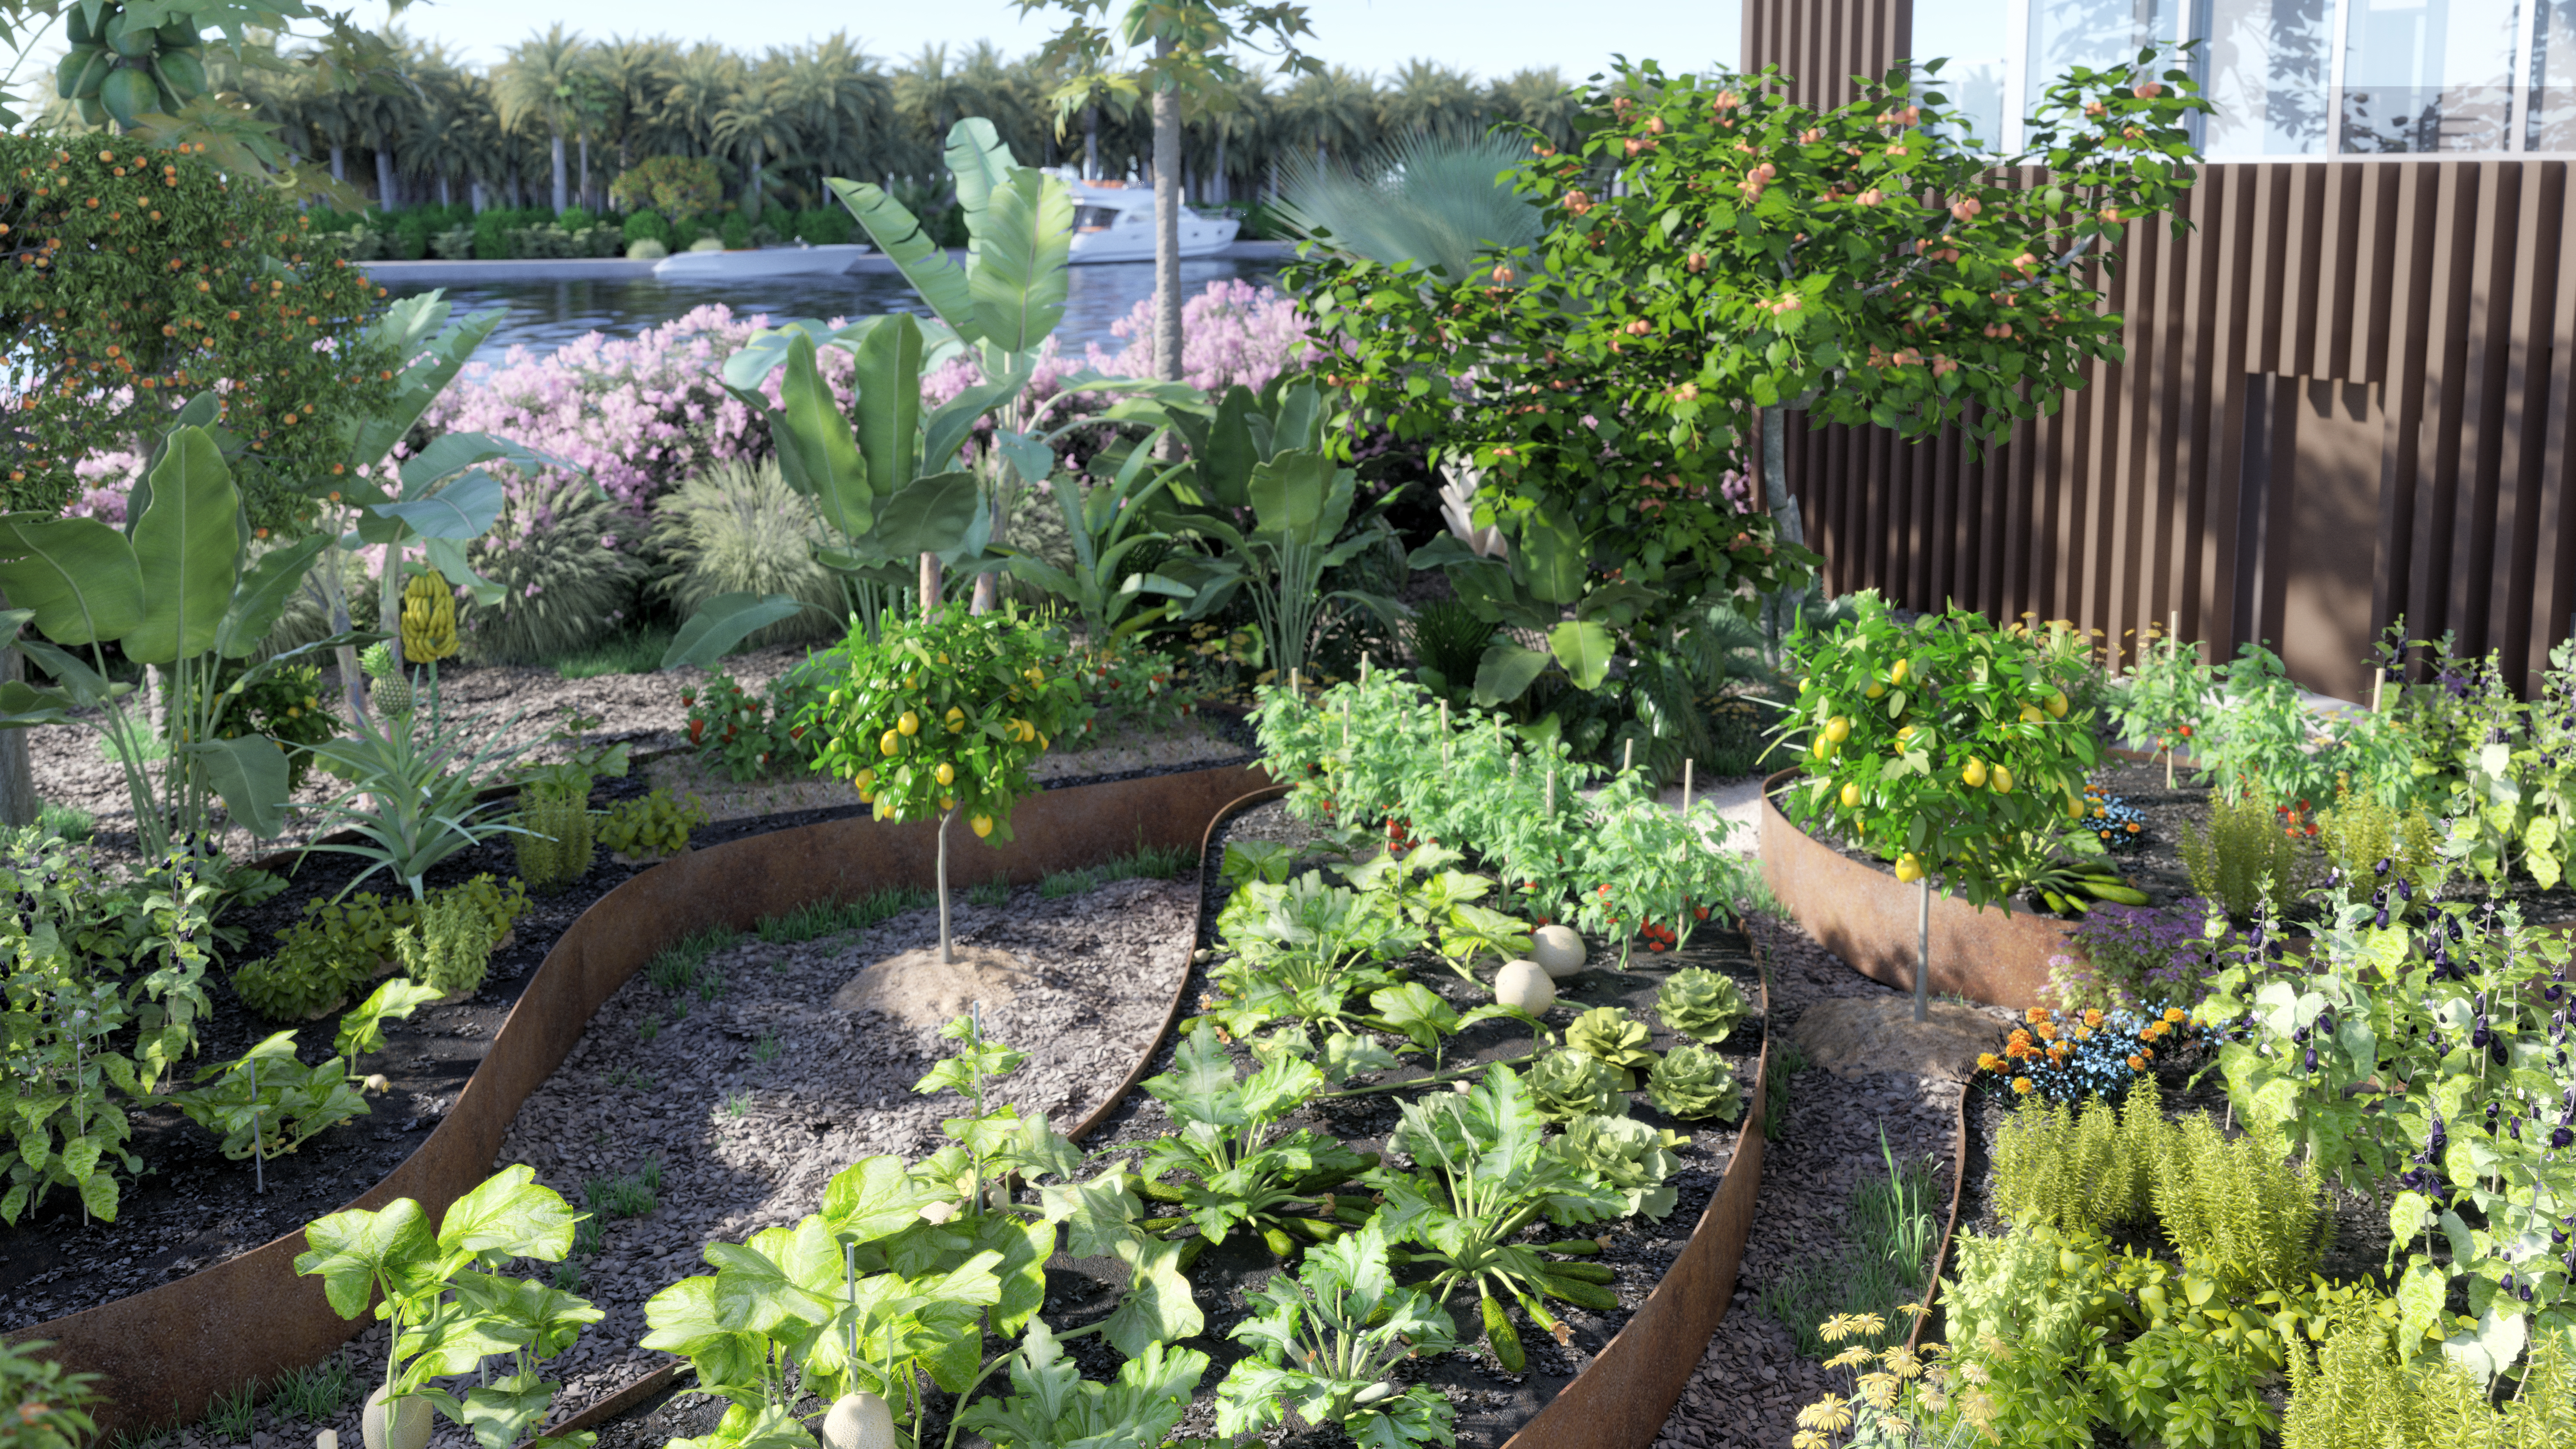 The ecological food and forest garden.